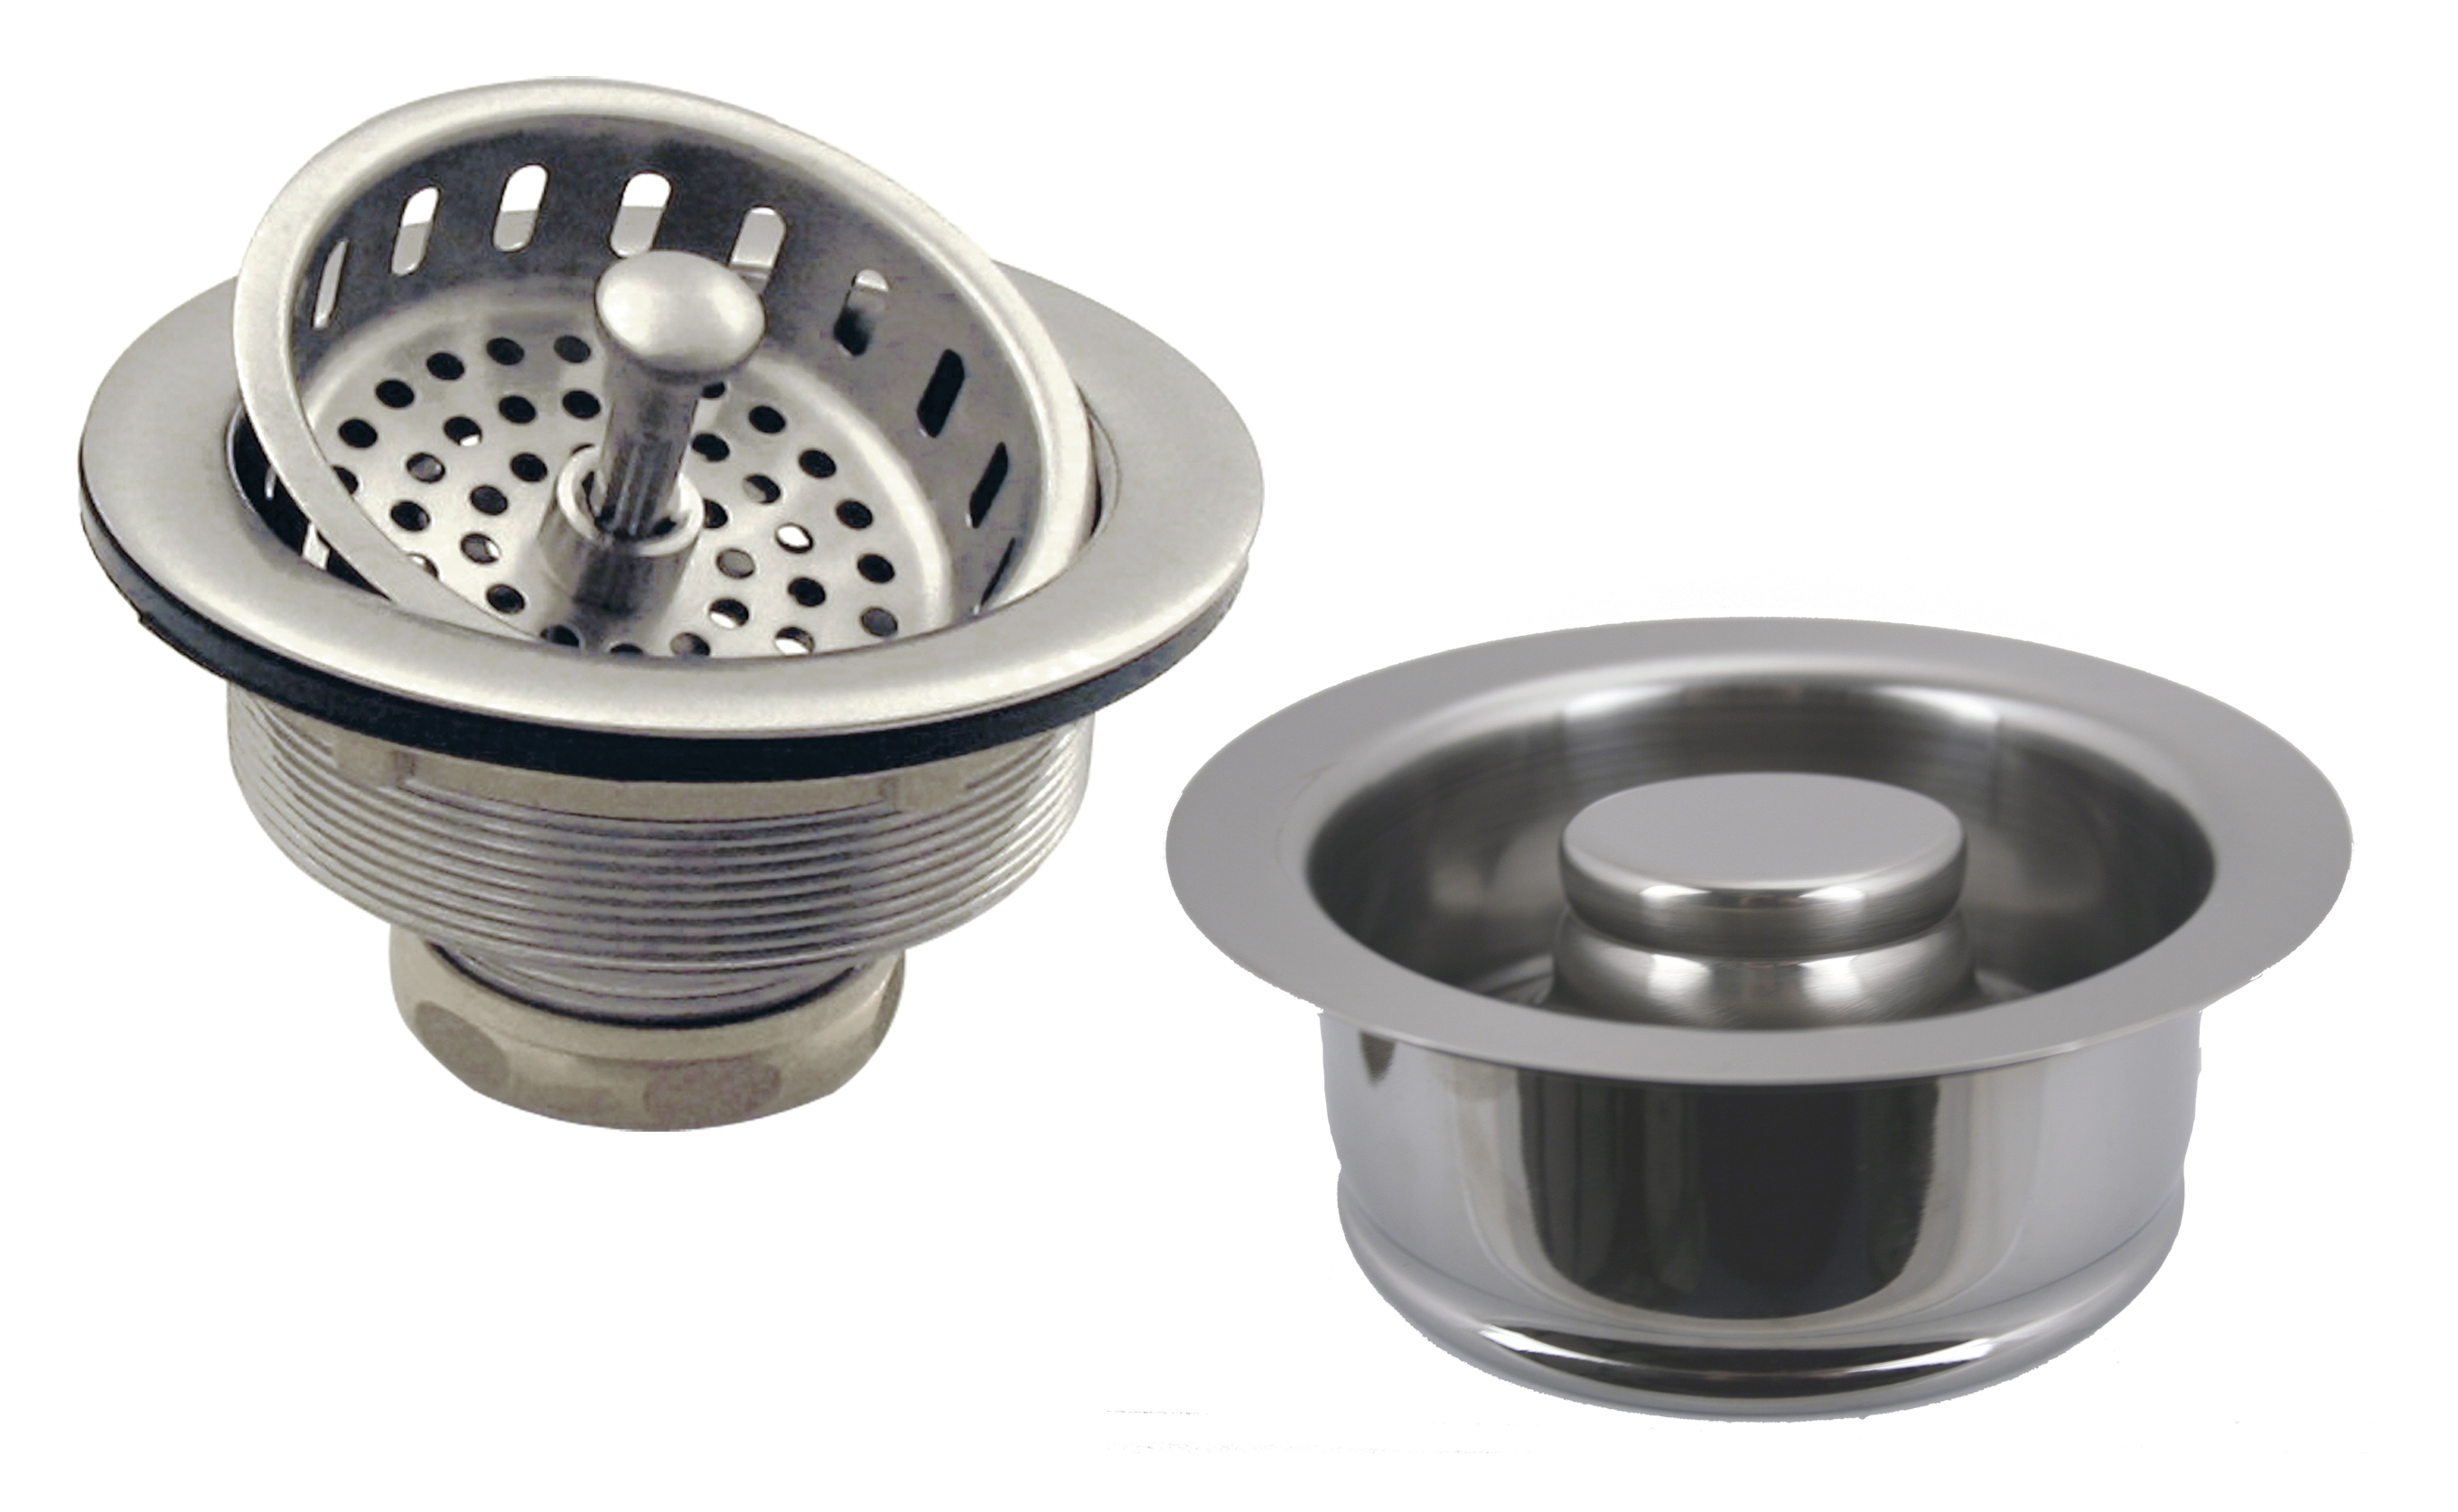 Post Style Large Kitchen Basket Strainer with